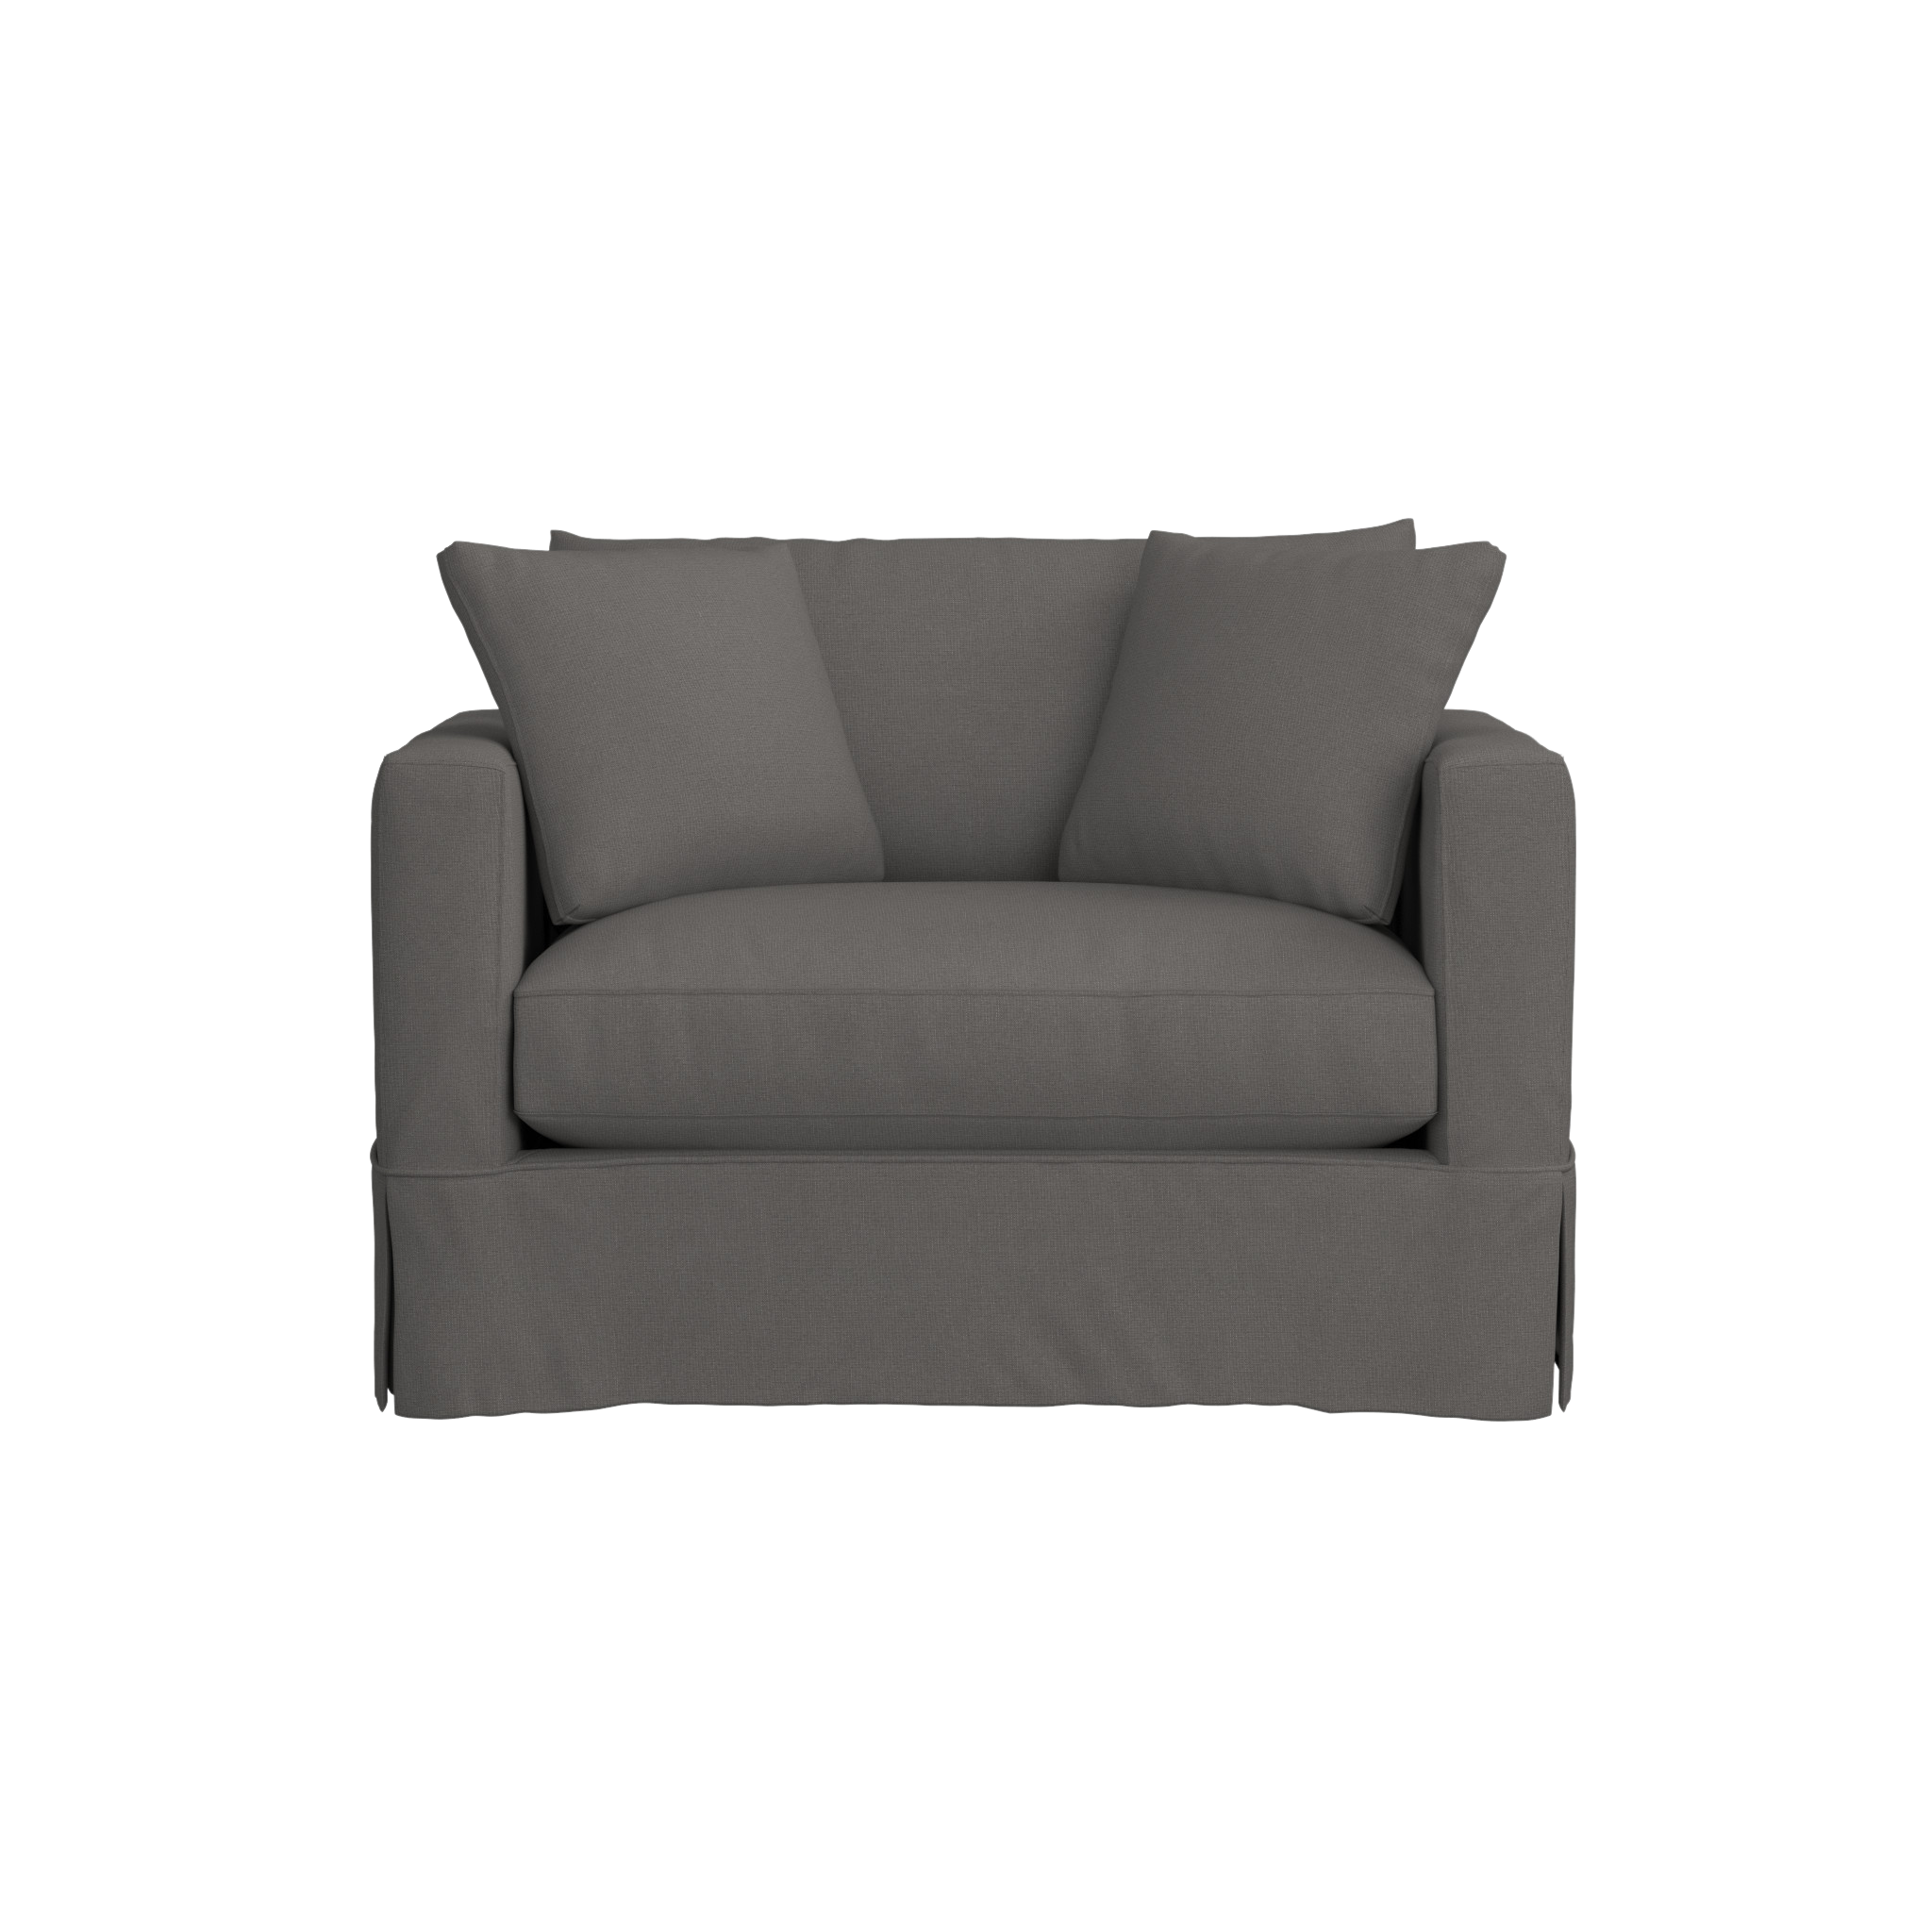 Willow White Twin Sleeper Sofa + Reviews Crate and